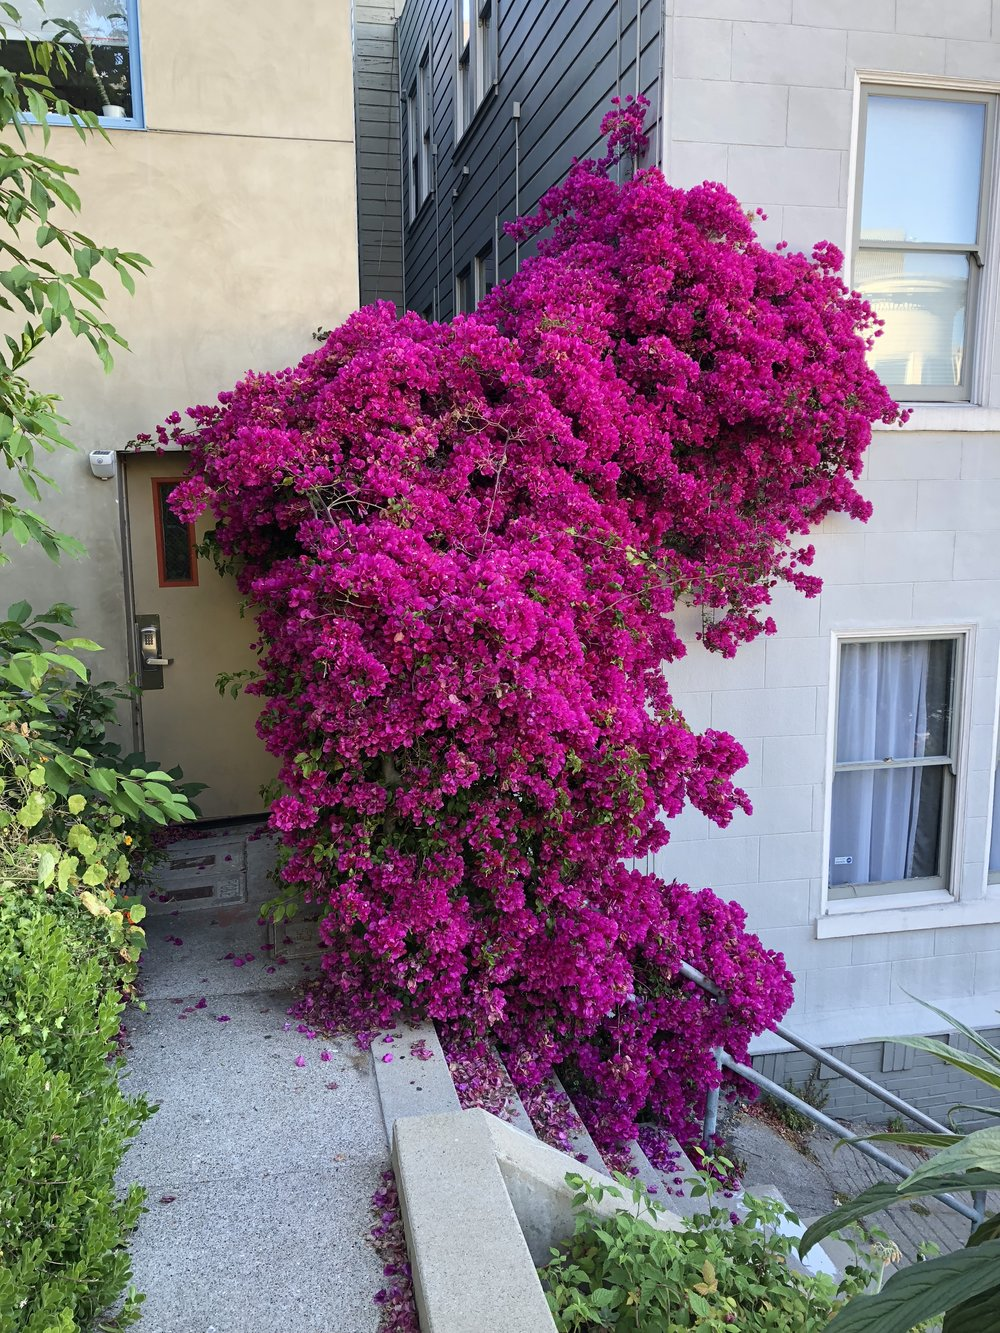 Bougainvillea thrives in San Francisco.